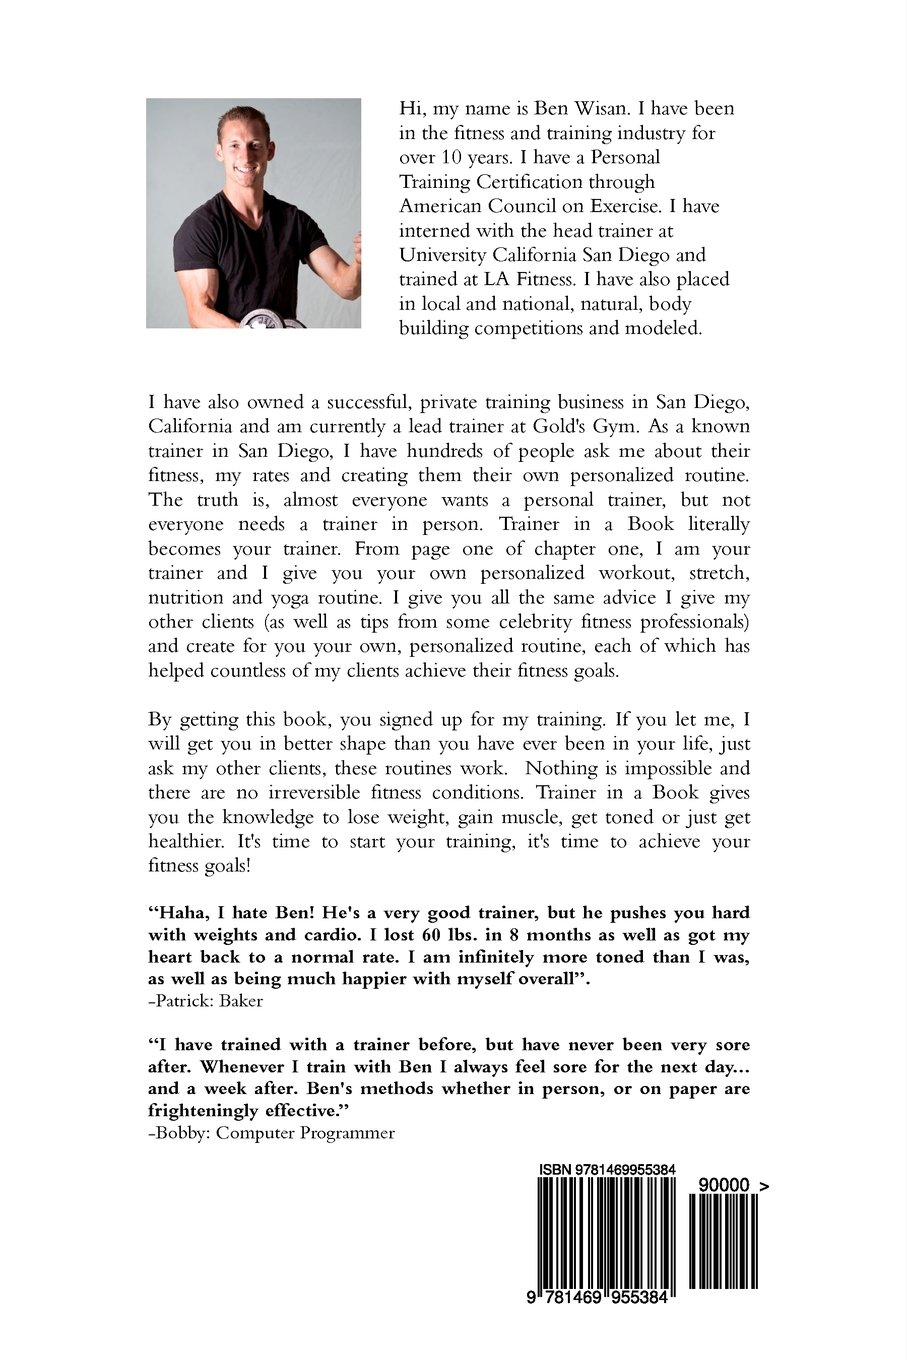 Trainer in a book an interactive and hands on fitness trainer in trainer in a book an interactive and hands on fitness trainer in a book vol 1 ben wisan 9781469955384 amazon books 1betcityfo Choice Image